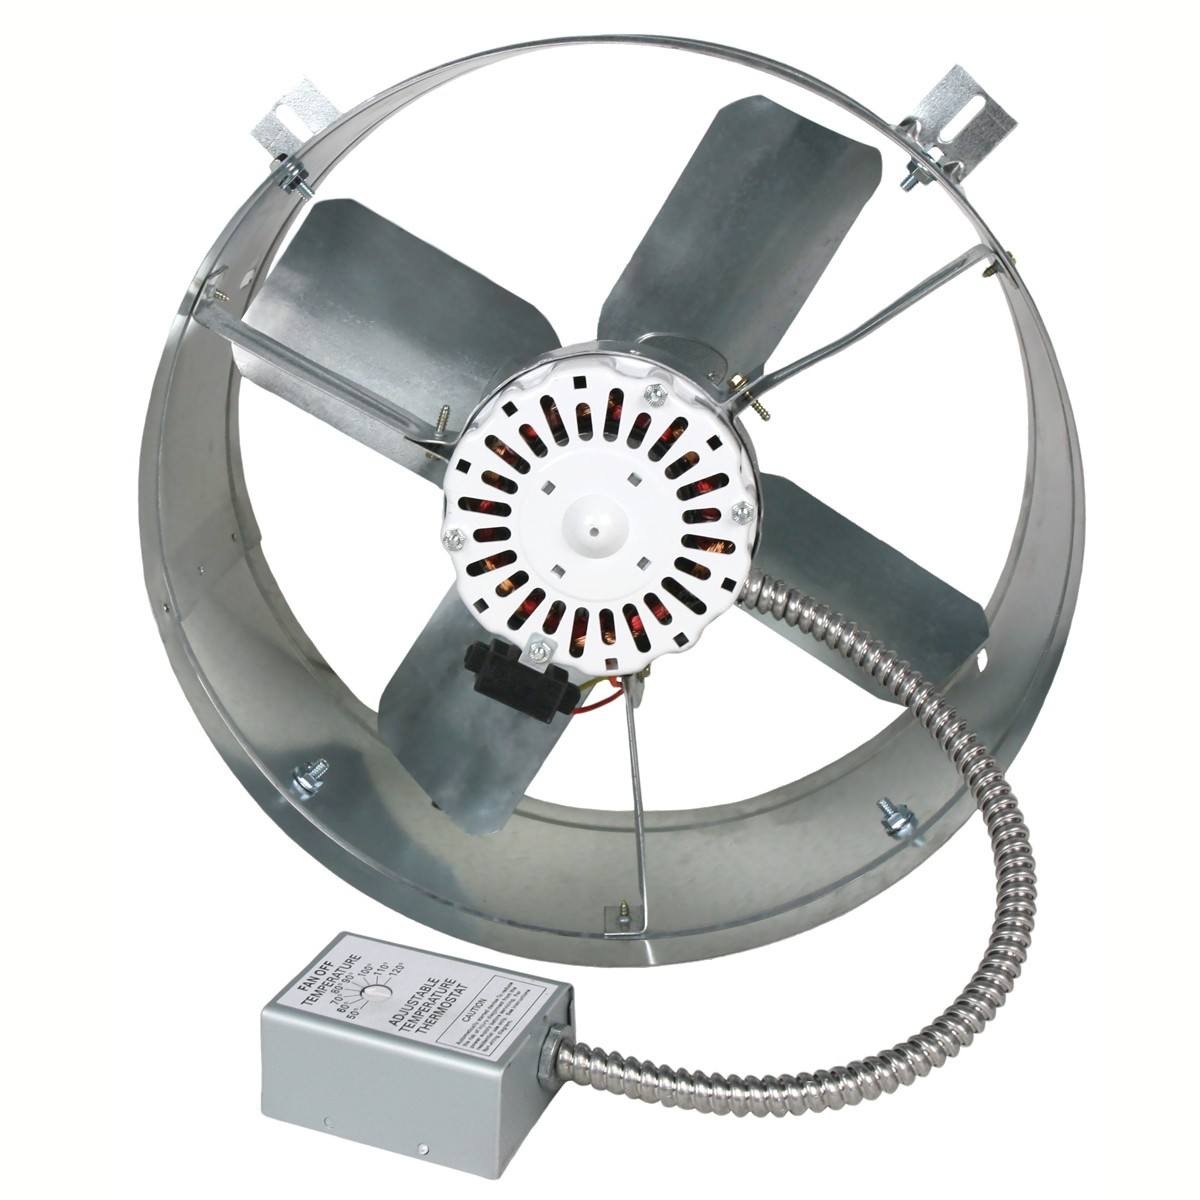 BUT VX2515 1300 CFM Power Attic Gable Fan